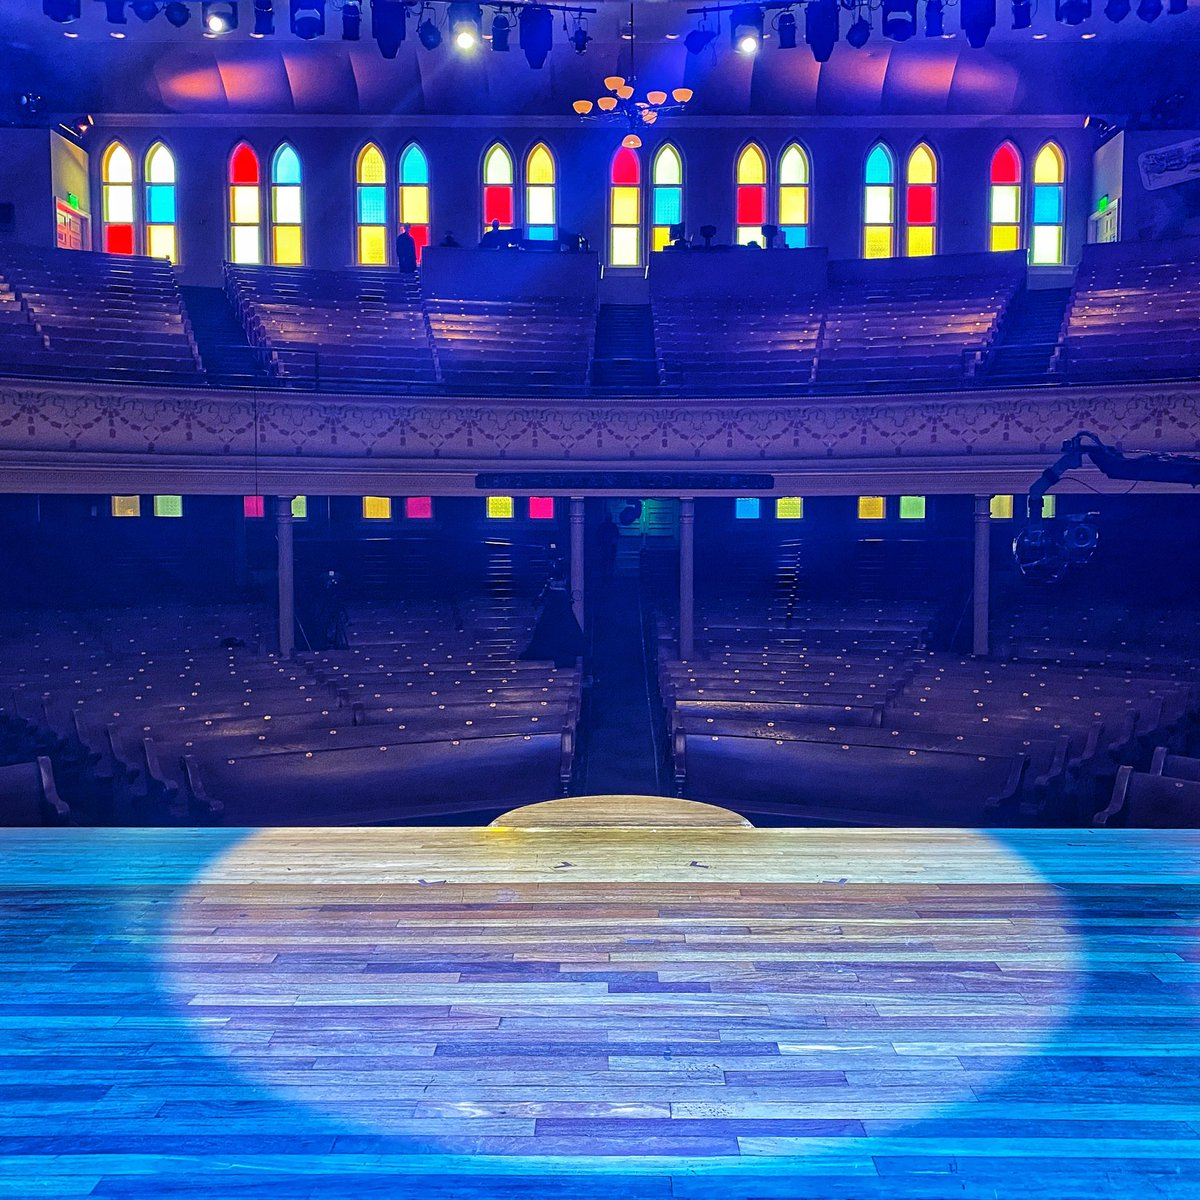 The lights are set and I'm ready to step into @theryman circle! Tune into #SOSFEST on @YouTube in just 30 minutes! https://t.co/Atfskom1B1 https://t.co/jFedHp23at